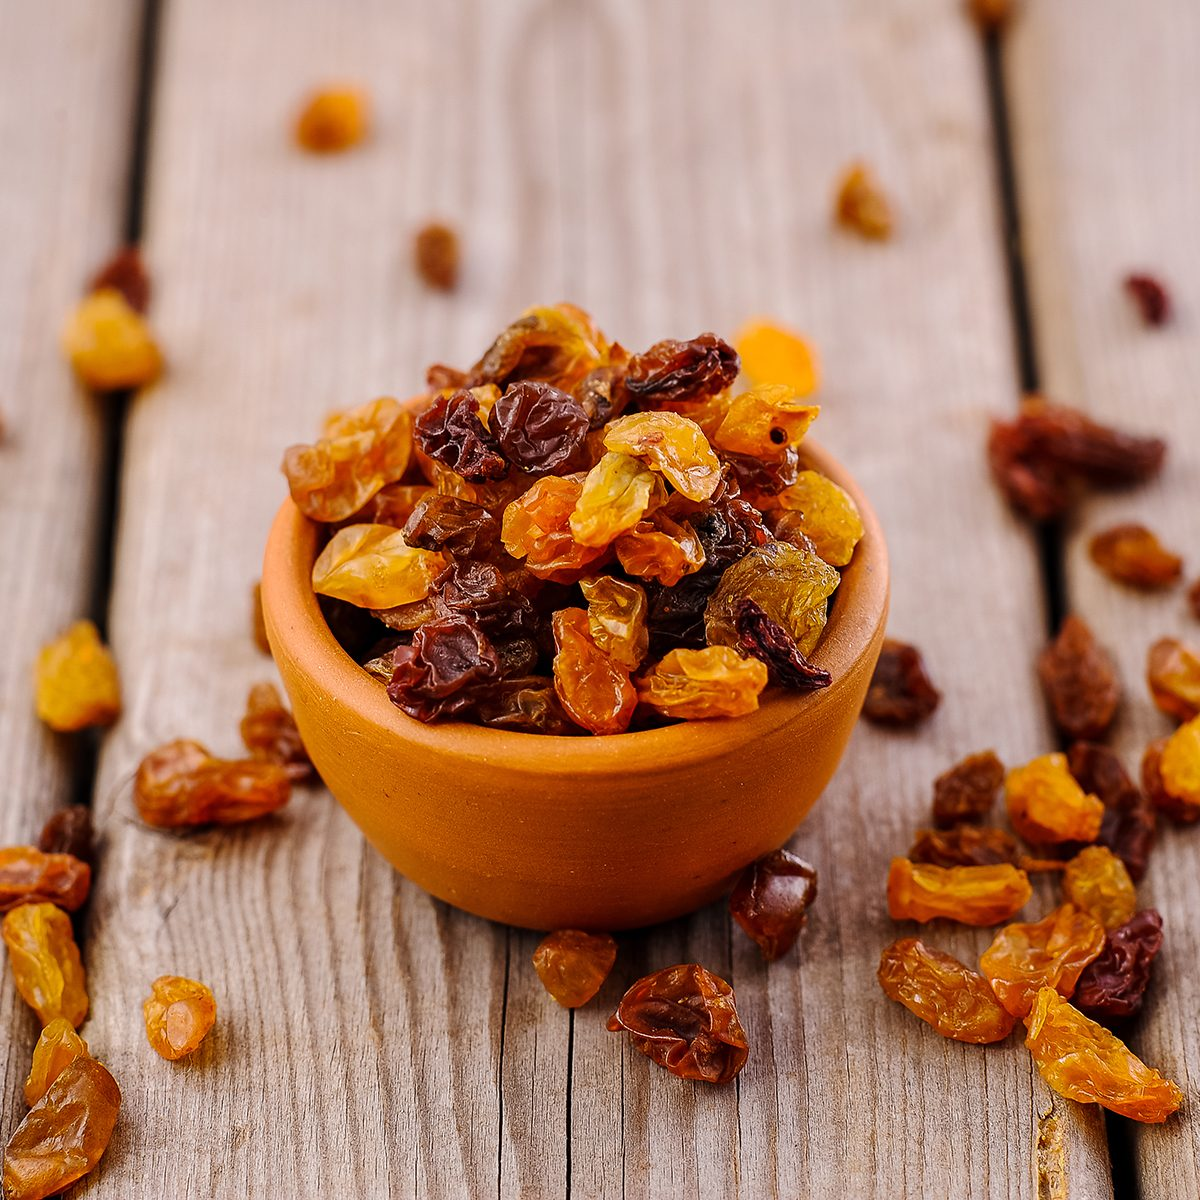 bowl of raisins. raisins on a wooden background.